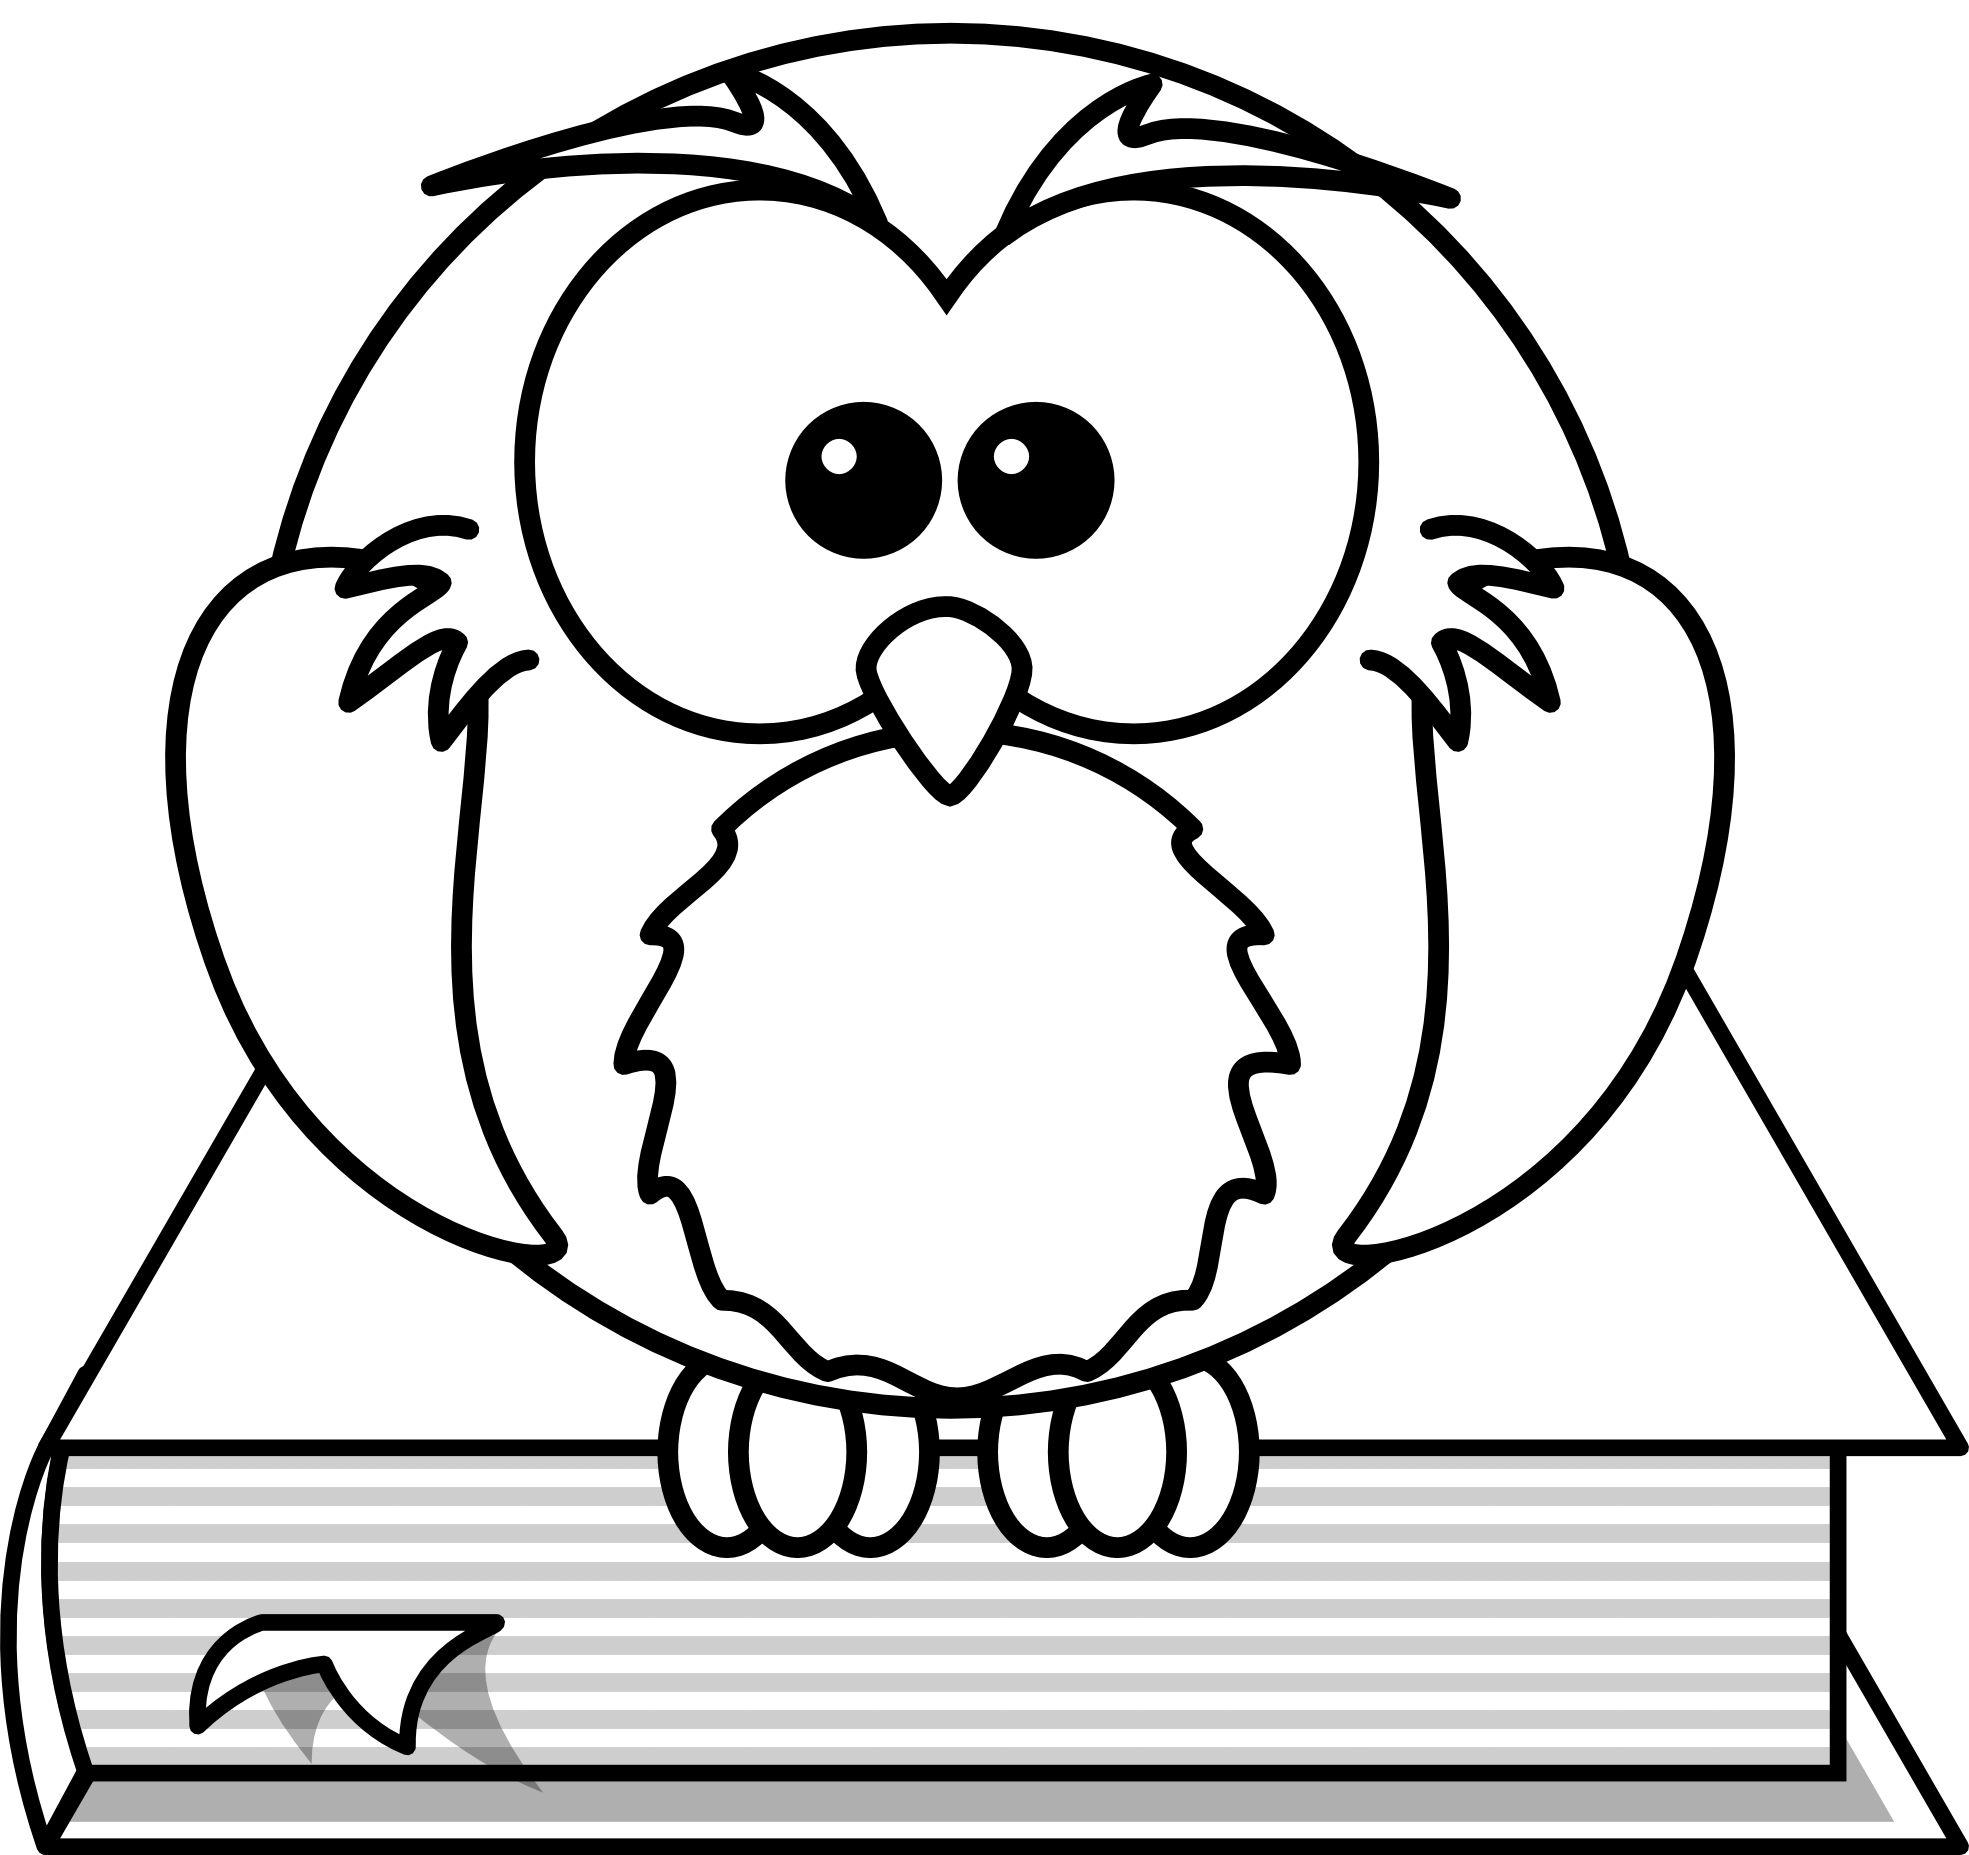 svg royalty free Drawing For Coloring at GetDrawings